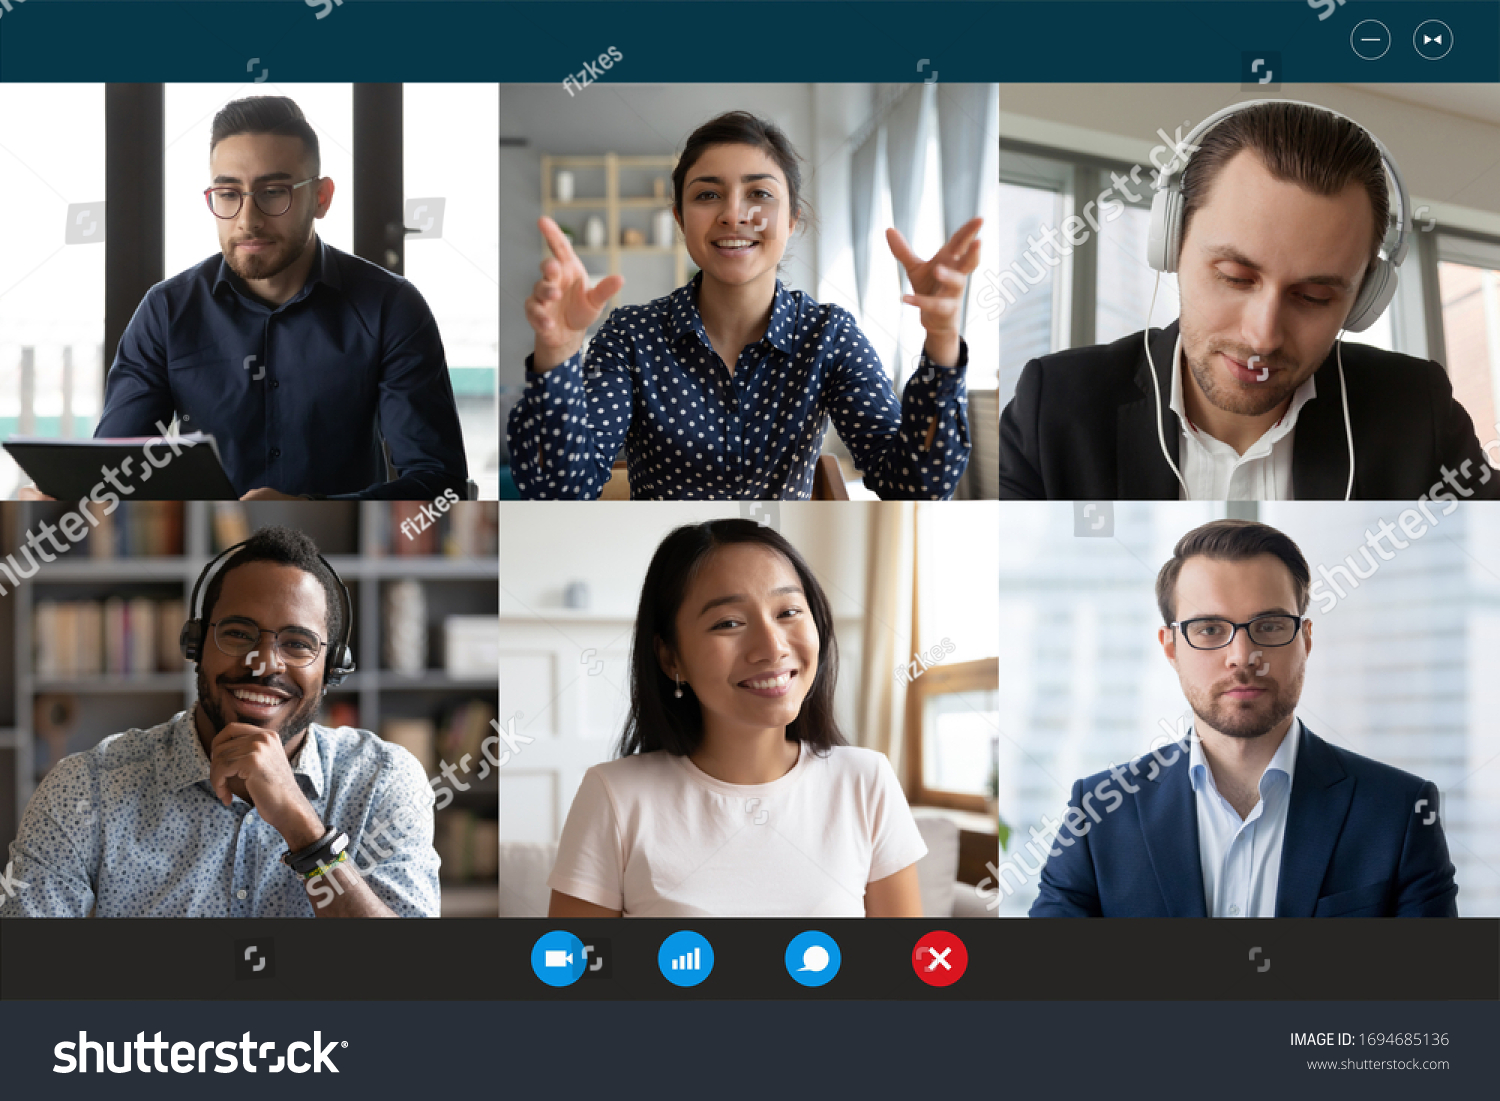 Team working by group video call share ideas brainstorming negotiating use video conference, pc screen view six multi ethnic young people, application advertisement easy and comfortable usage concept #1694685136